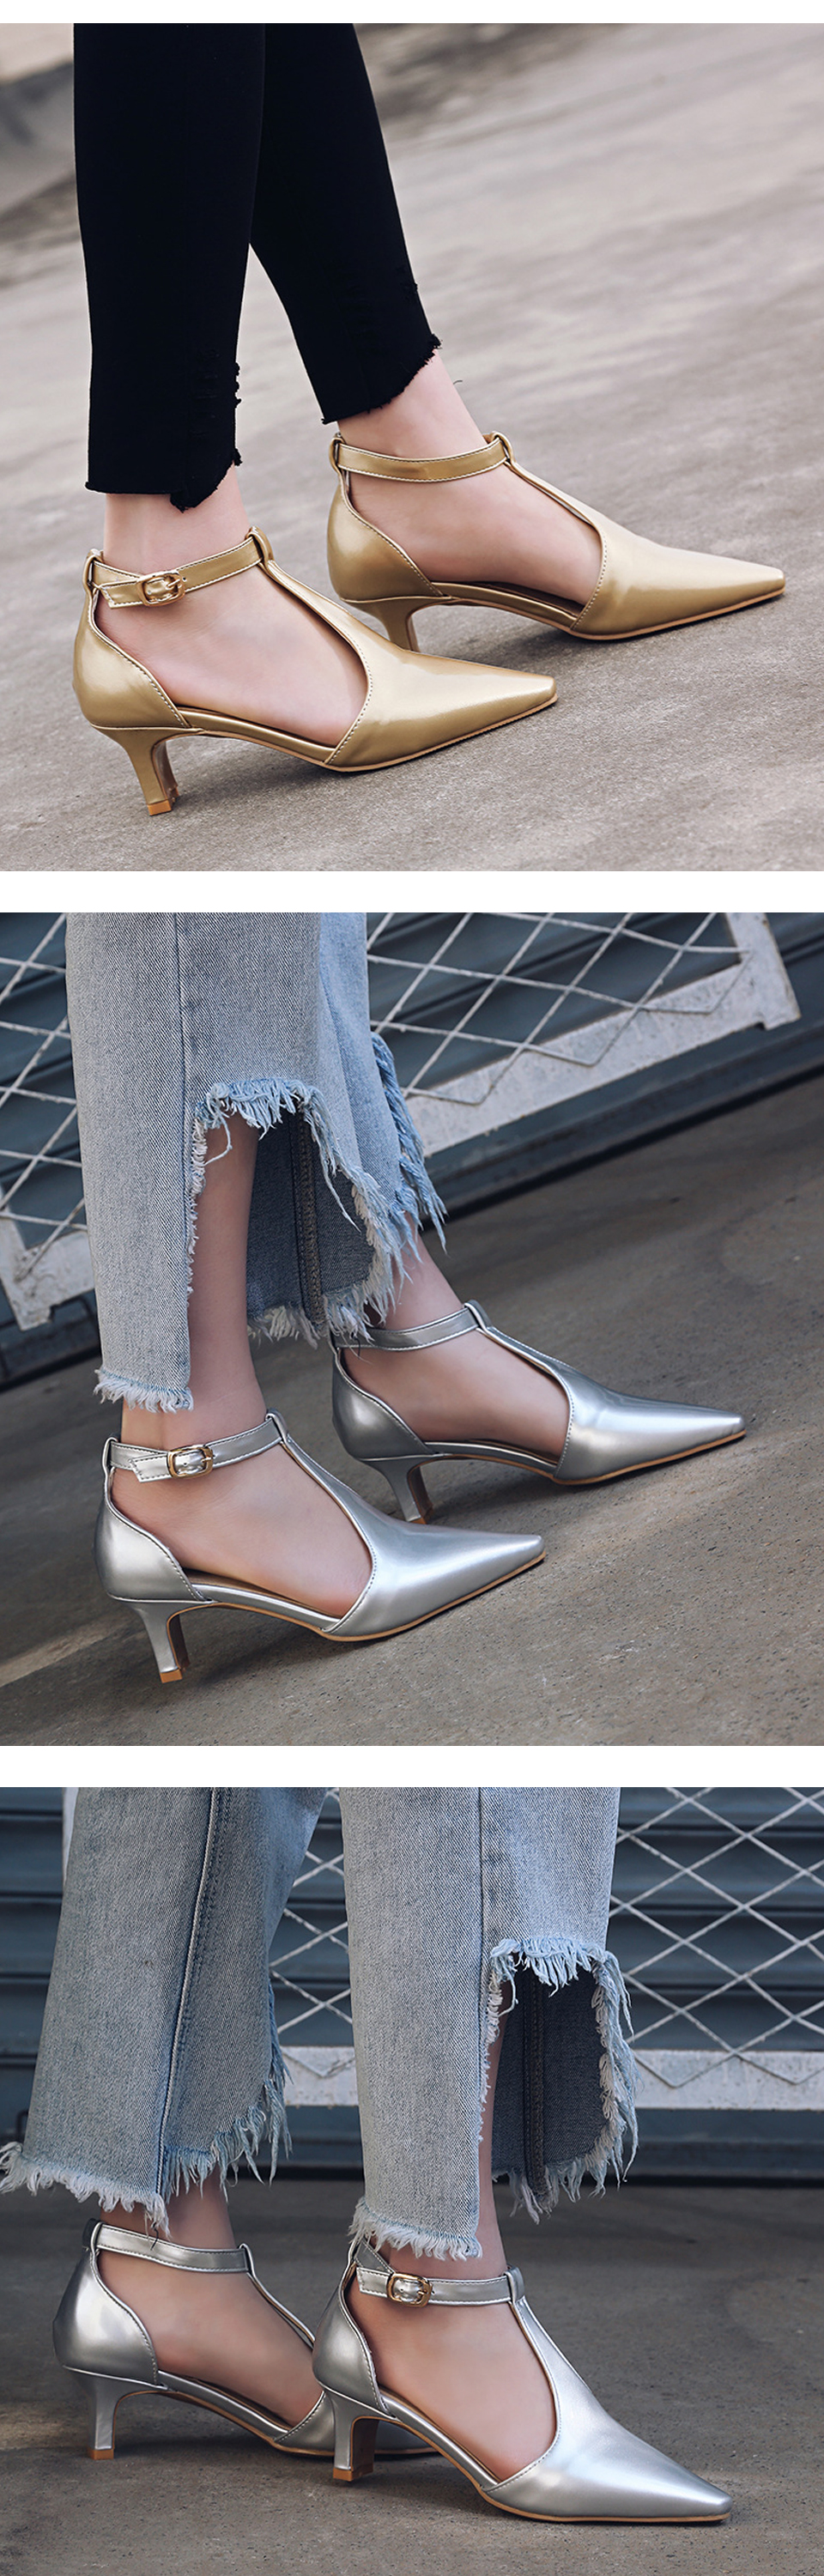 Shoes Woman High Heels Mary Jane Pointed Toe Women Pumps Brand Ankle Strap Summer Shoes Thin Heel Black Plus Size New Arrvial DE 5